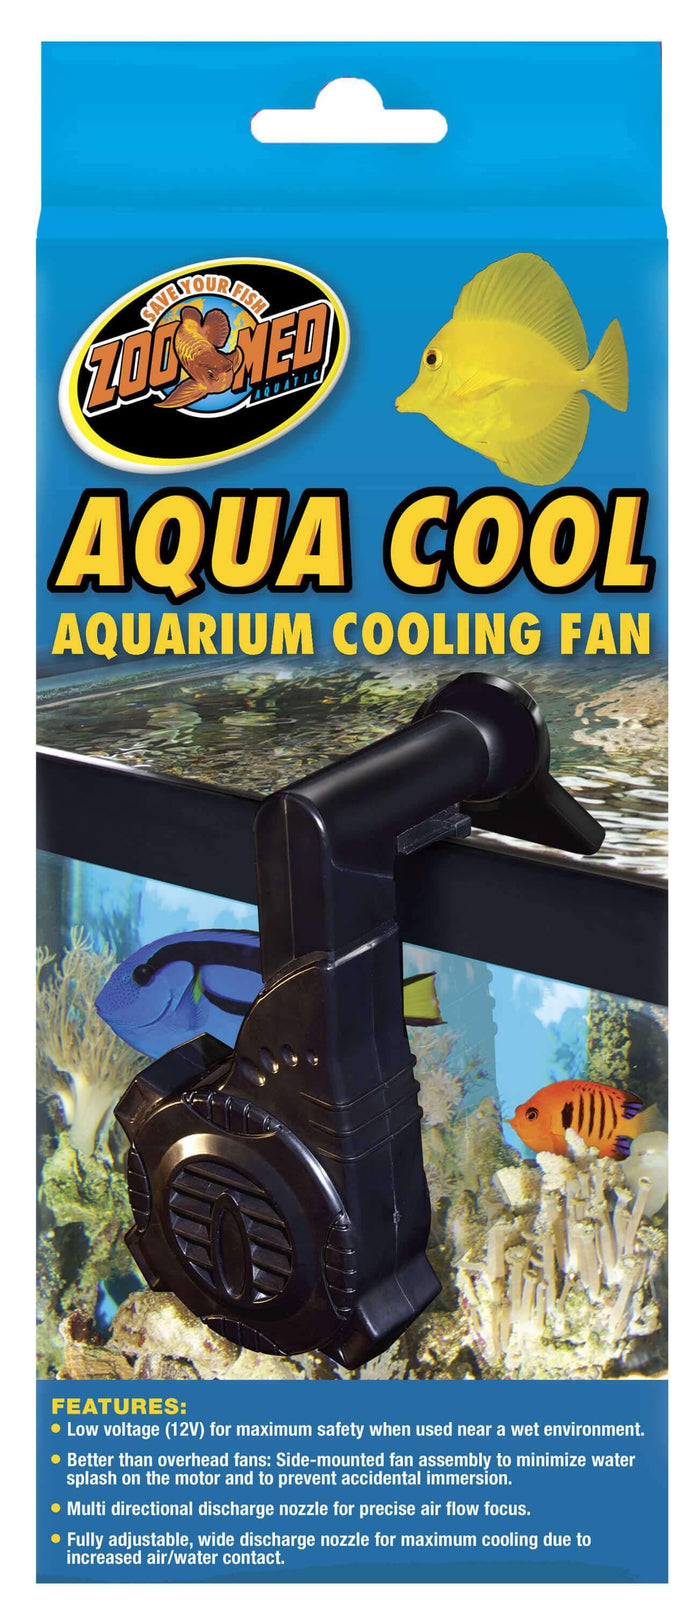 AquaCool Aquarium Cooling Fan